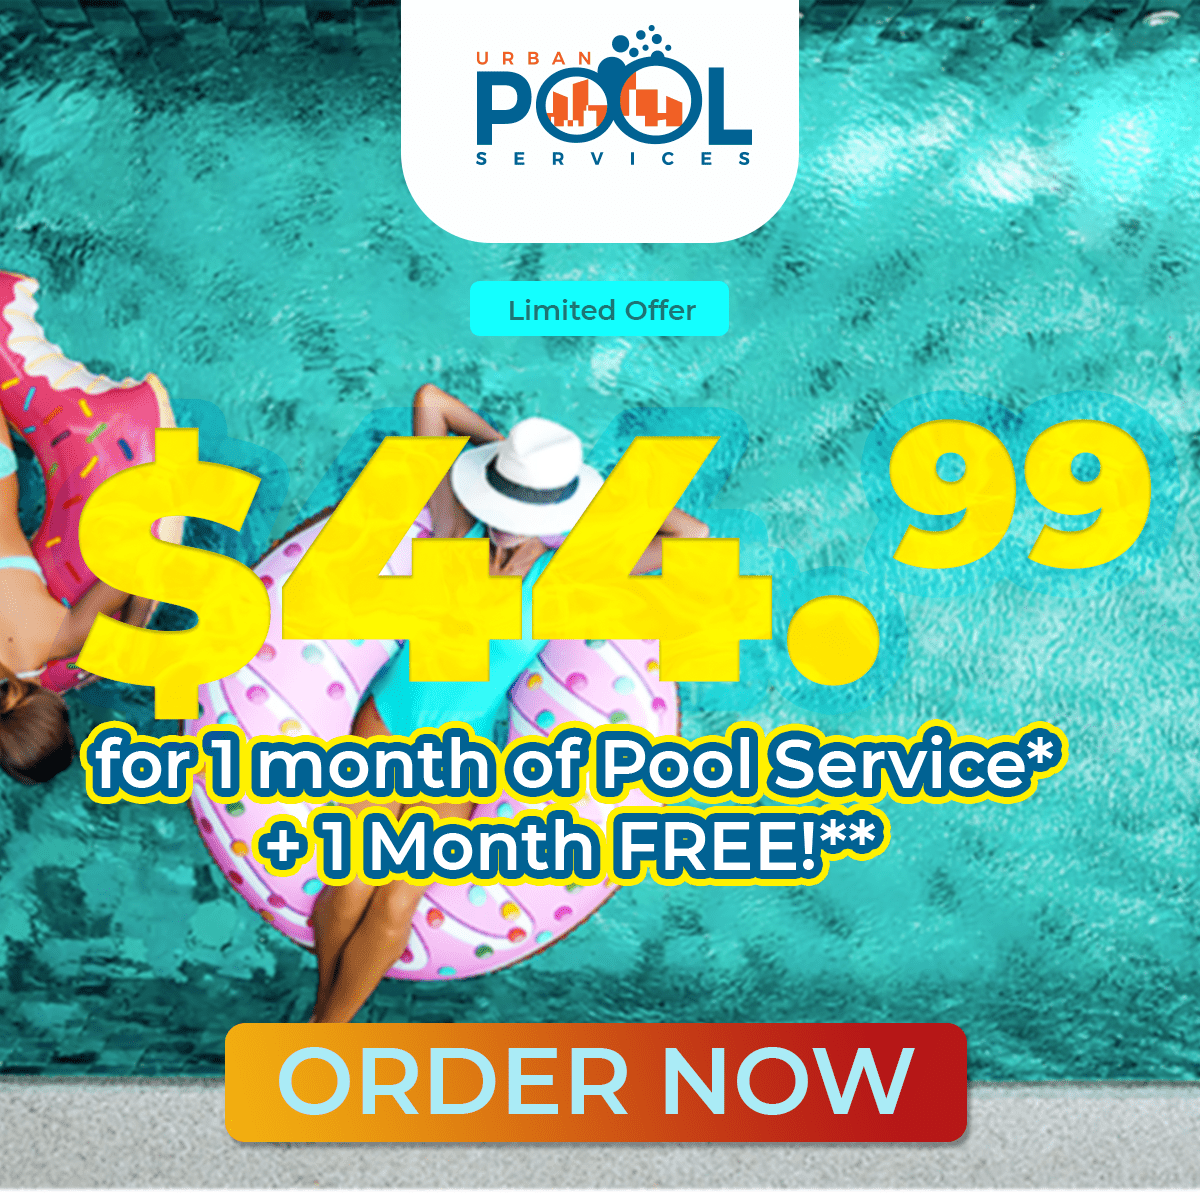 Florida Pool Service for 44.95 1 month